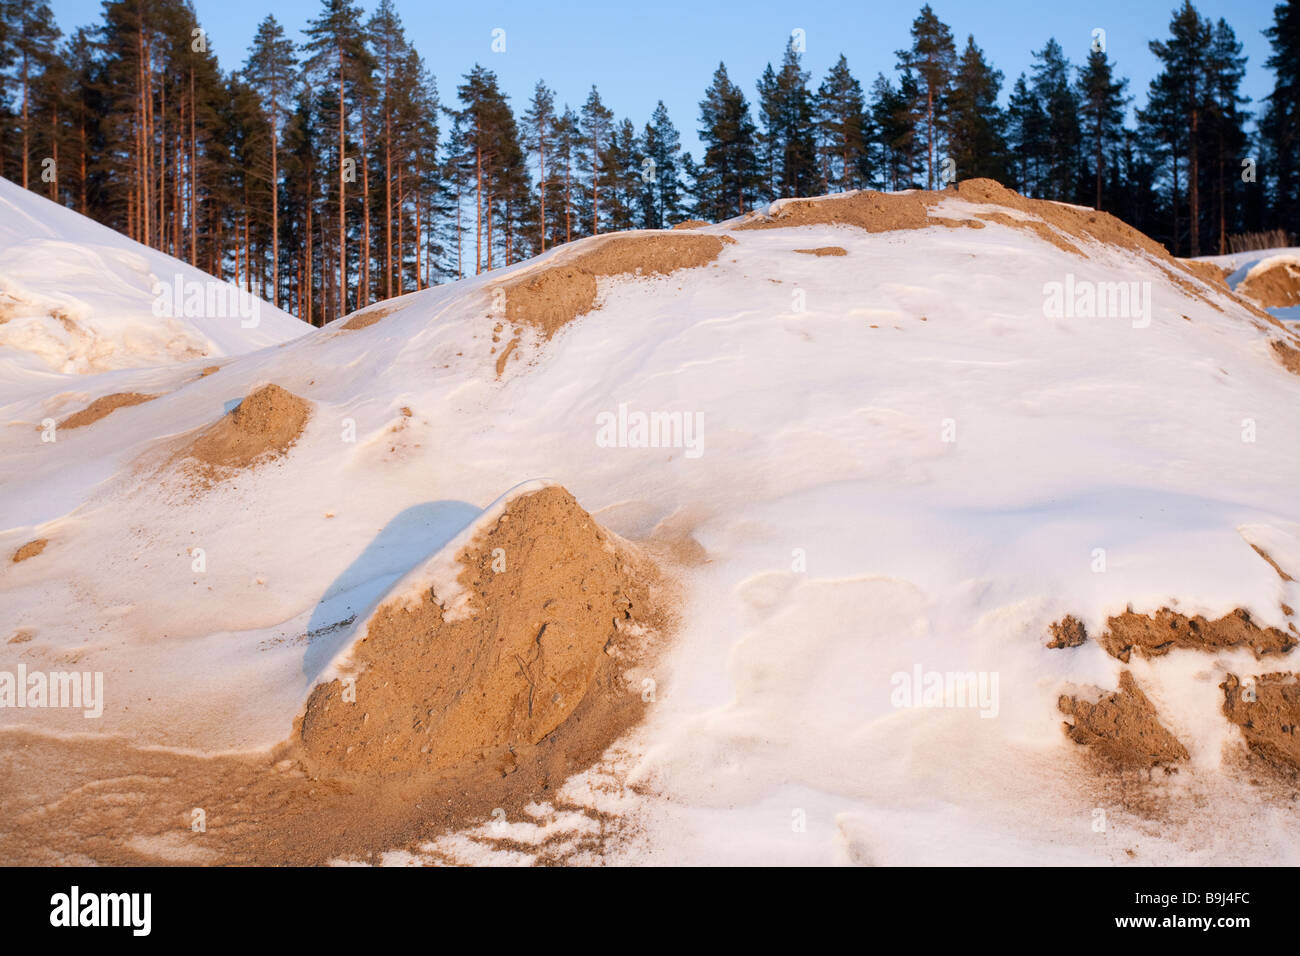 Sand extracted from a gravel pit which is situated on glacial esker , Finland - Stock Image